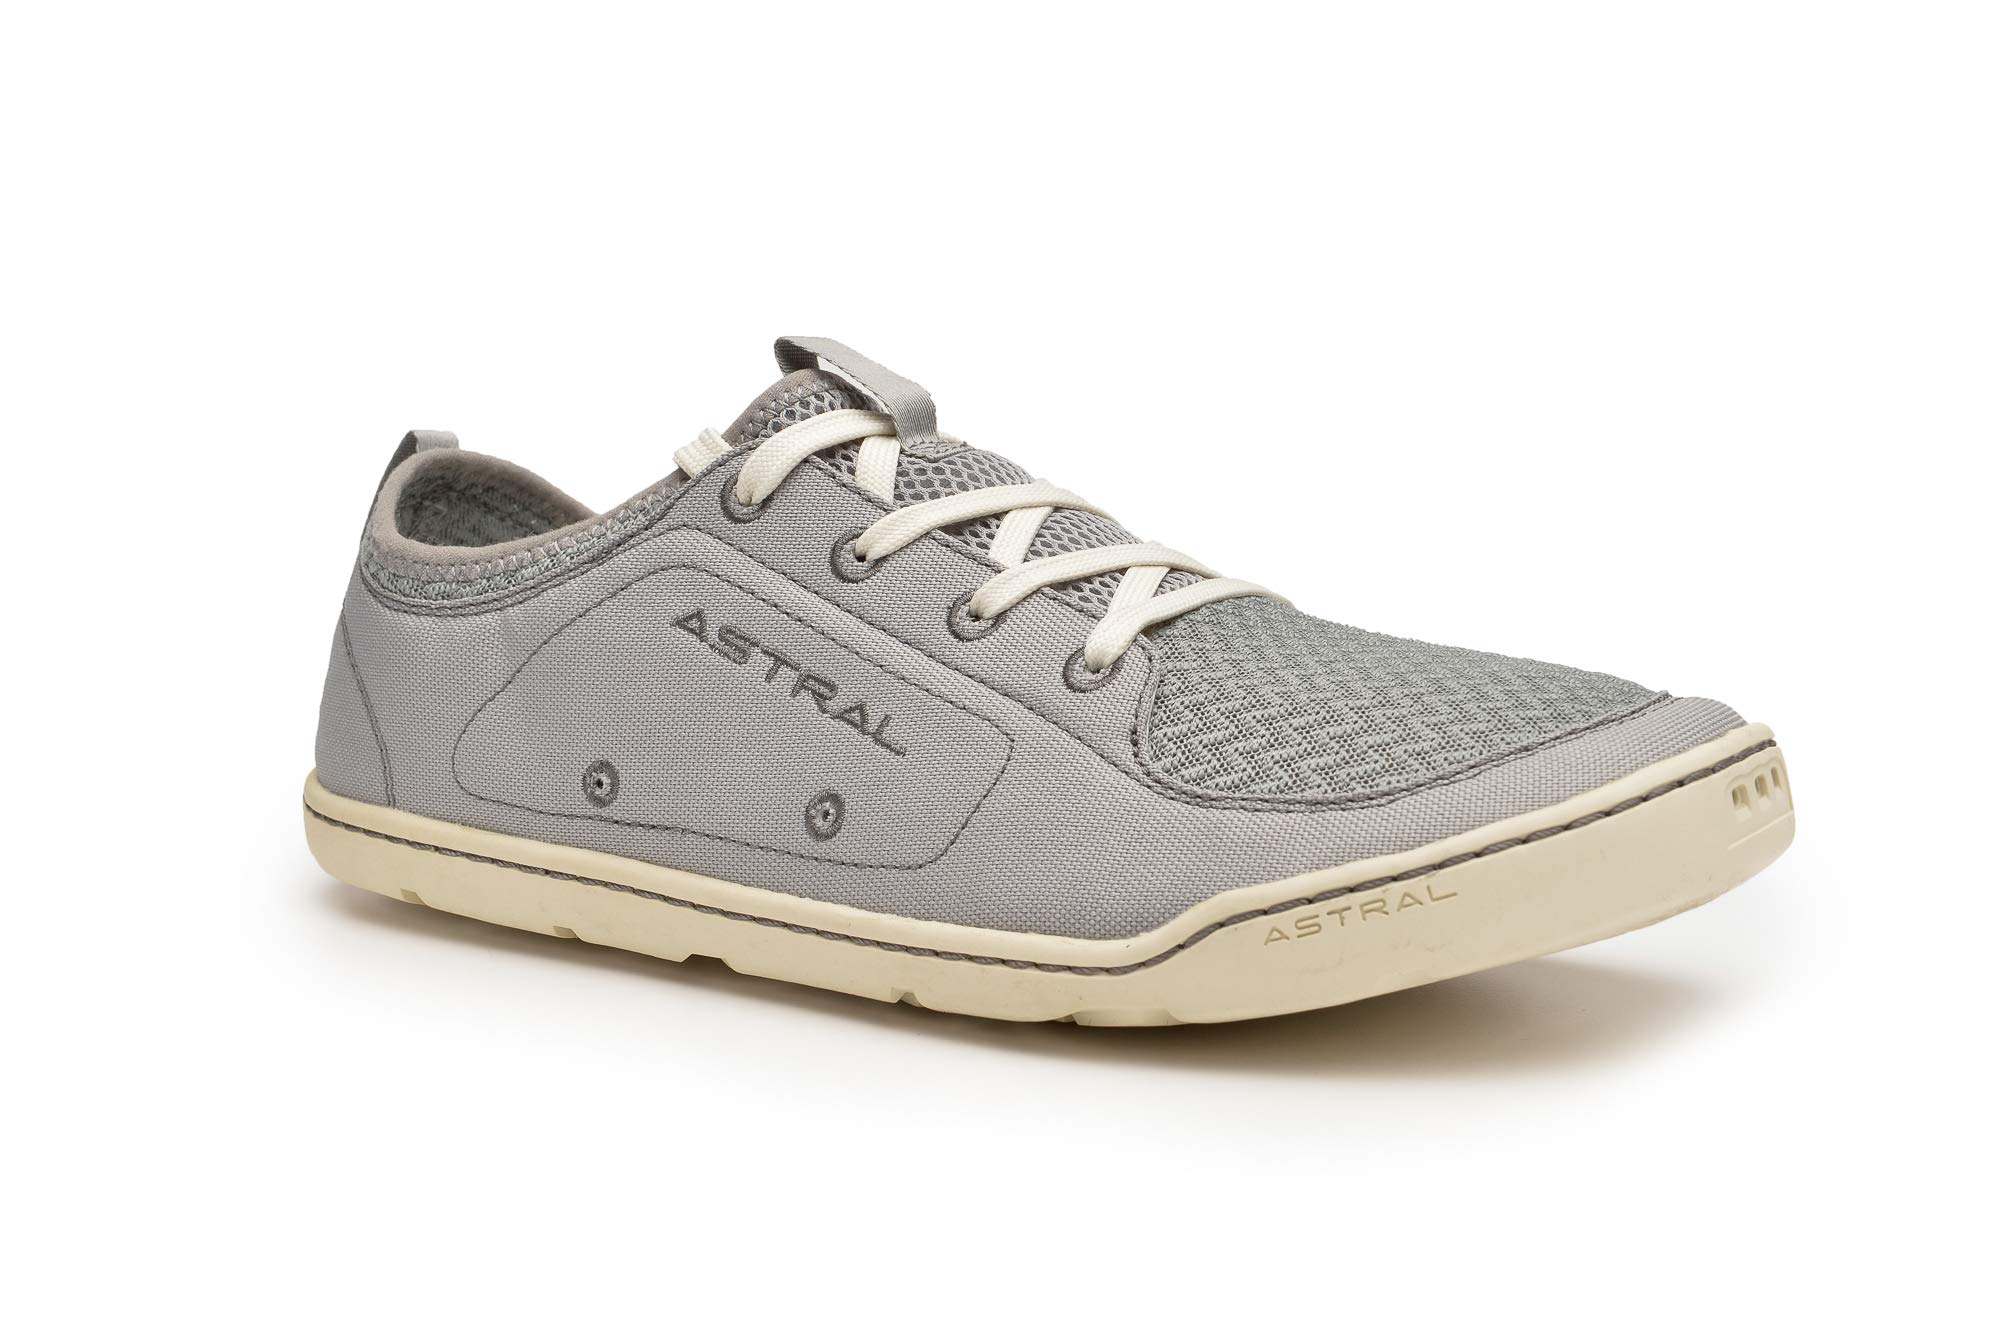 Astral Men's Loyak Everyday Outdoor Minimalist Sneakers, Lightweight and Flexible, Made for Water, Casual, Travel, and Boat, Gray White, 8 M US